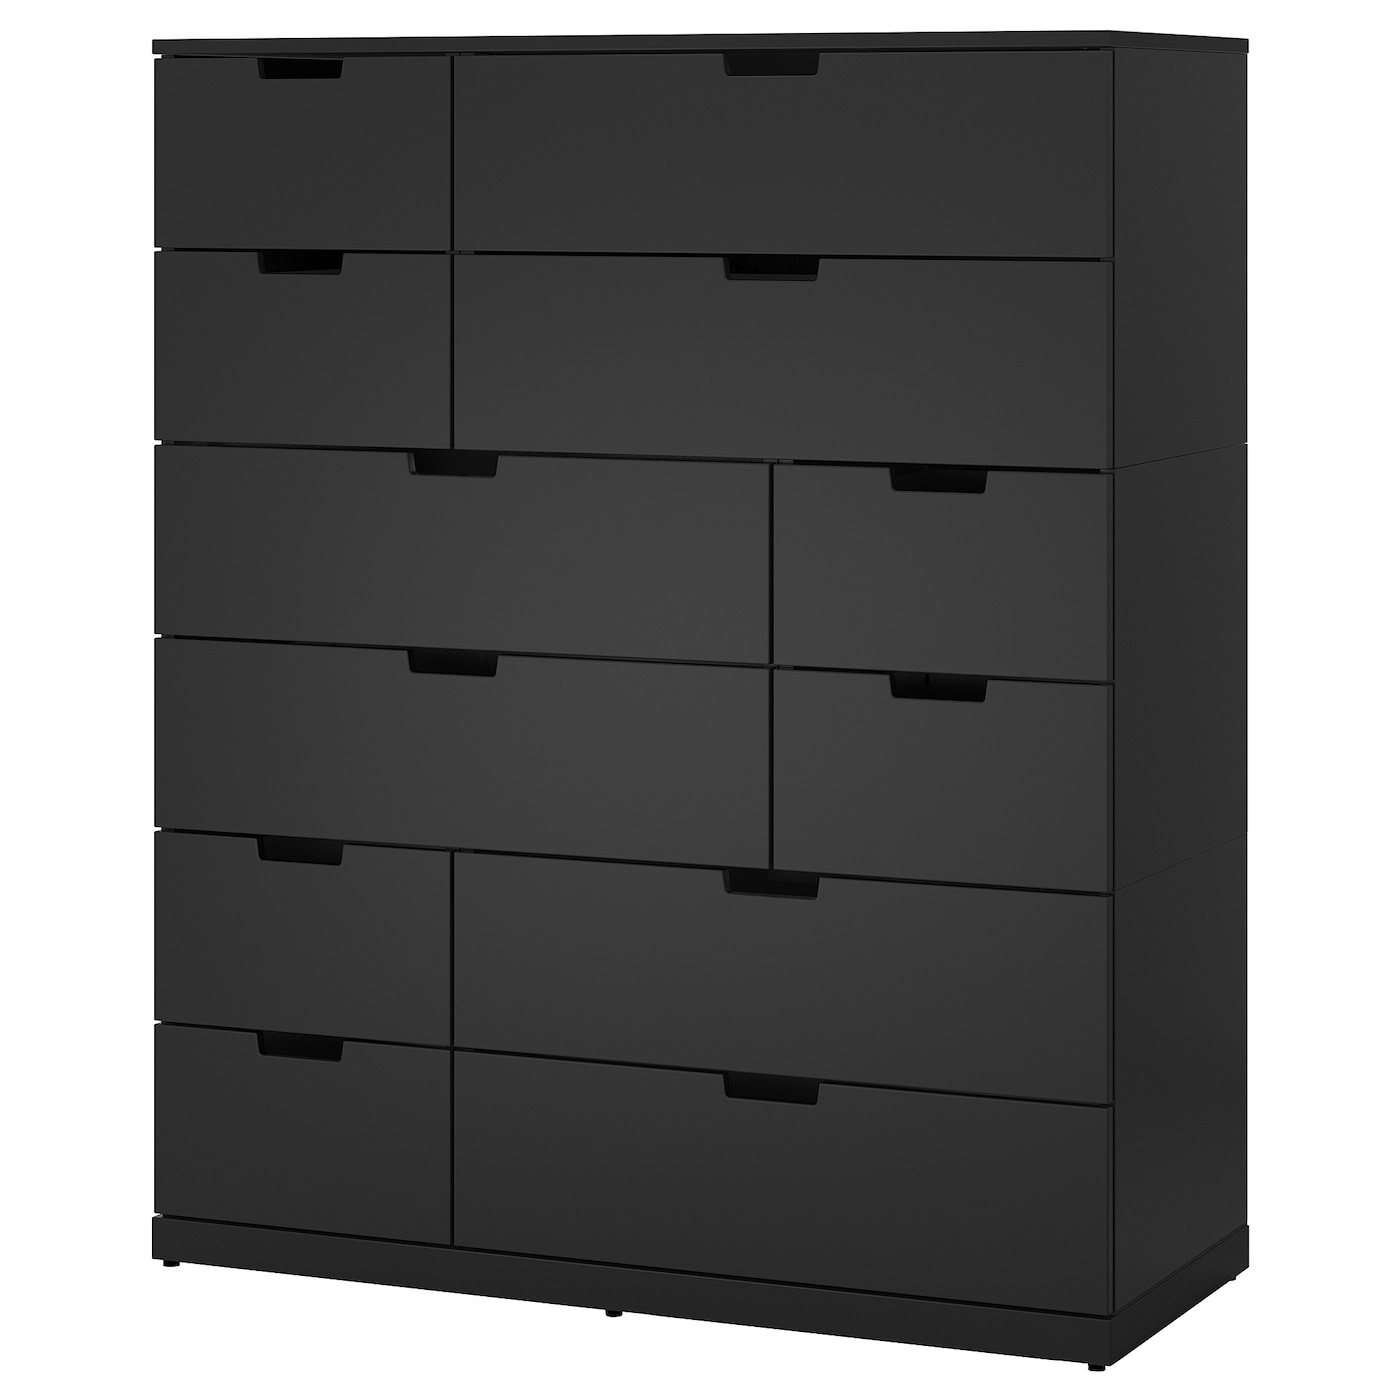 nordli commode avec 12 tiroirs anthracite 120 x 145 cm ikea. Black Bedroom Furniture Sets. Home Design Ideas